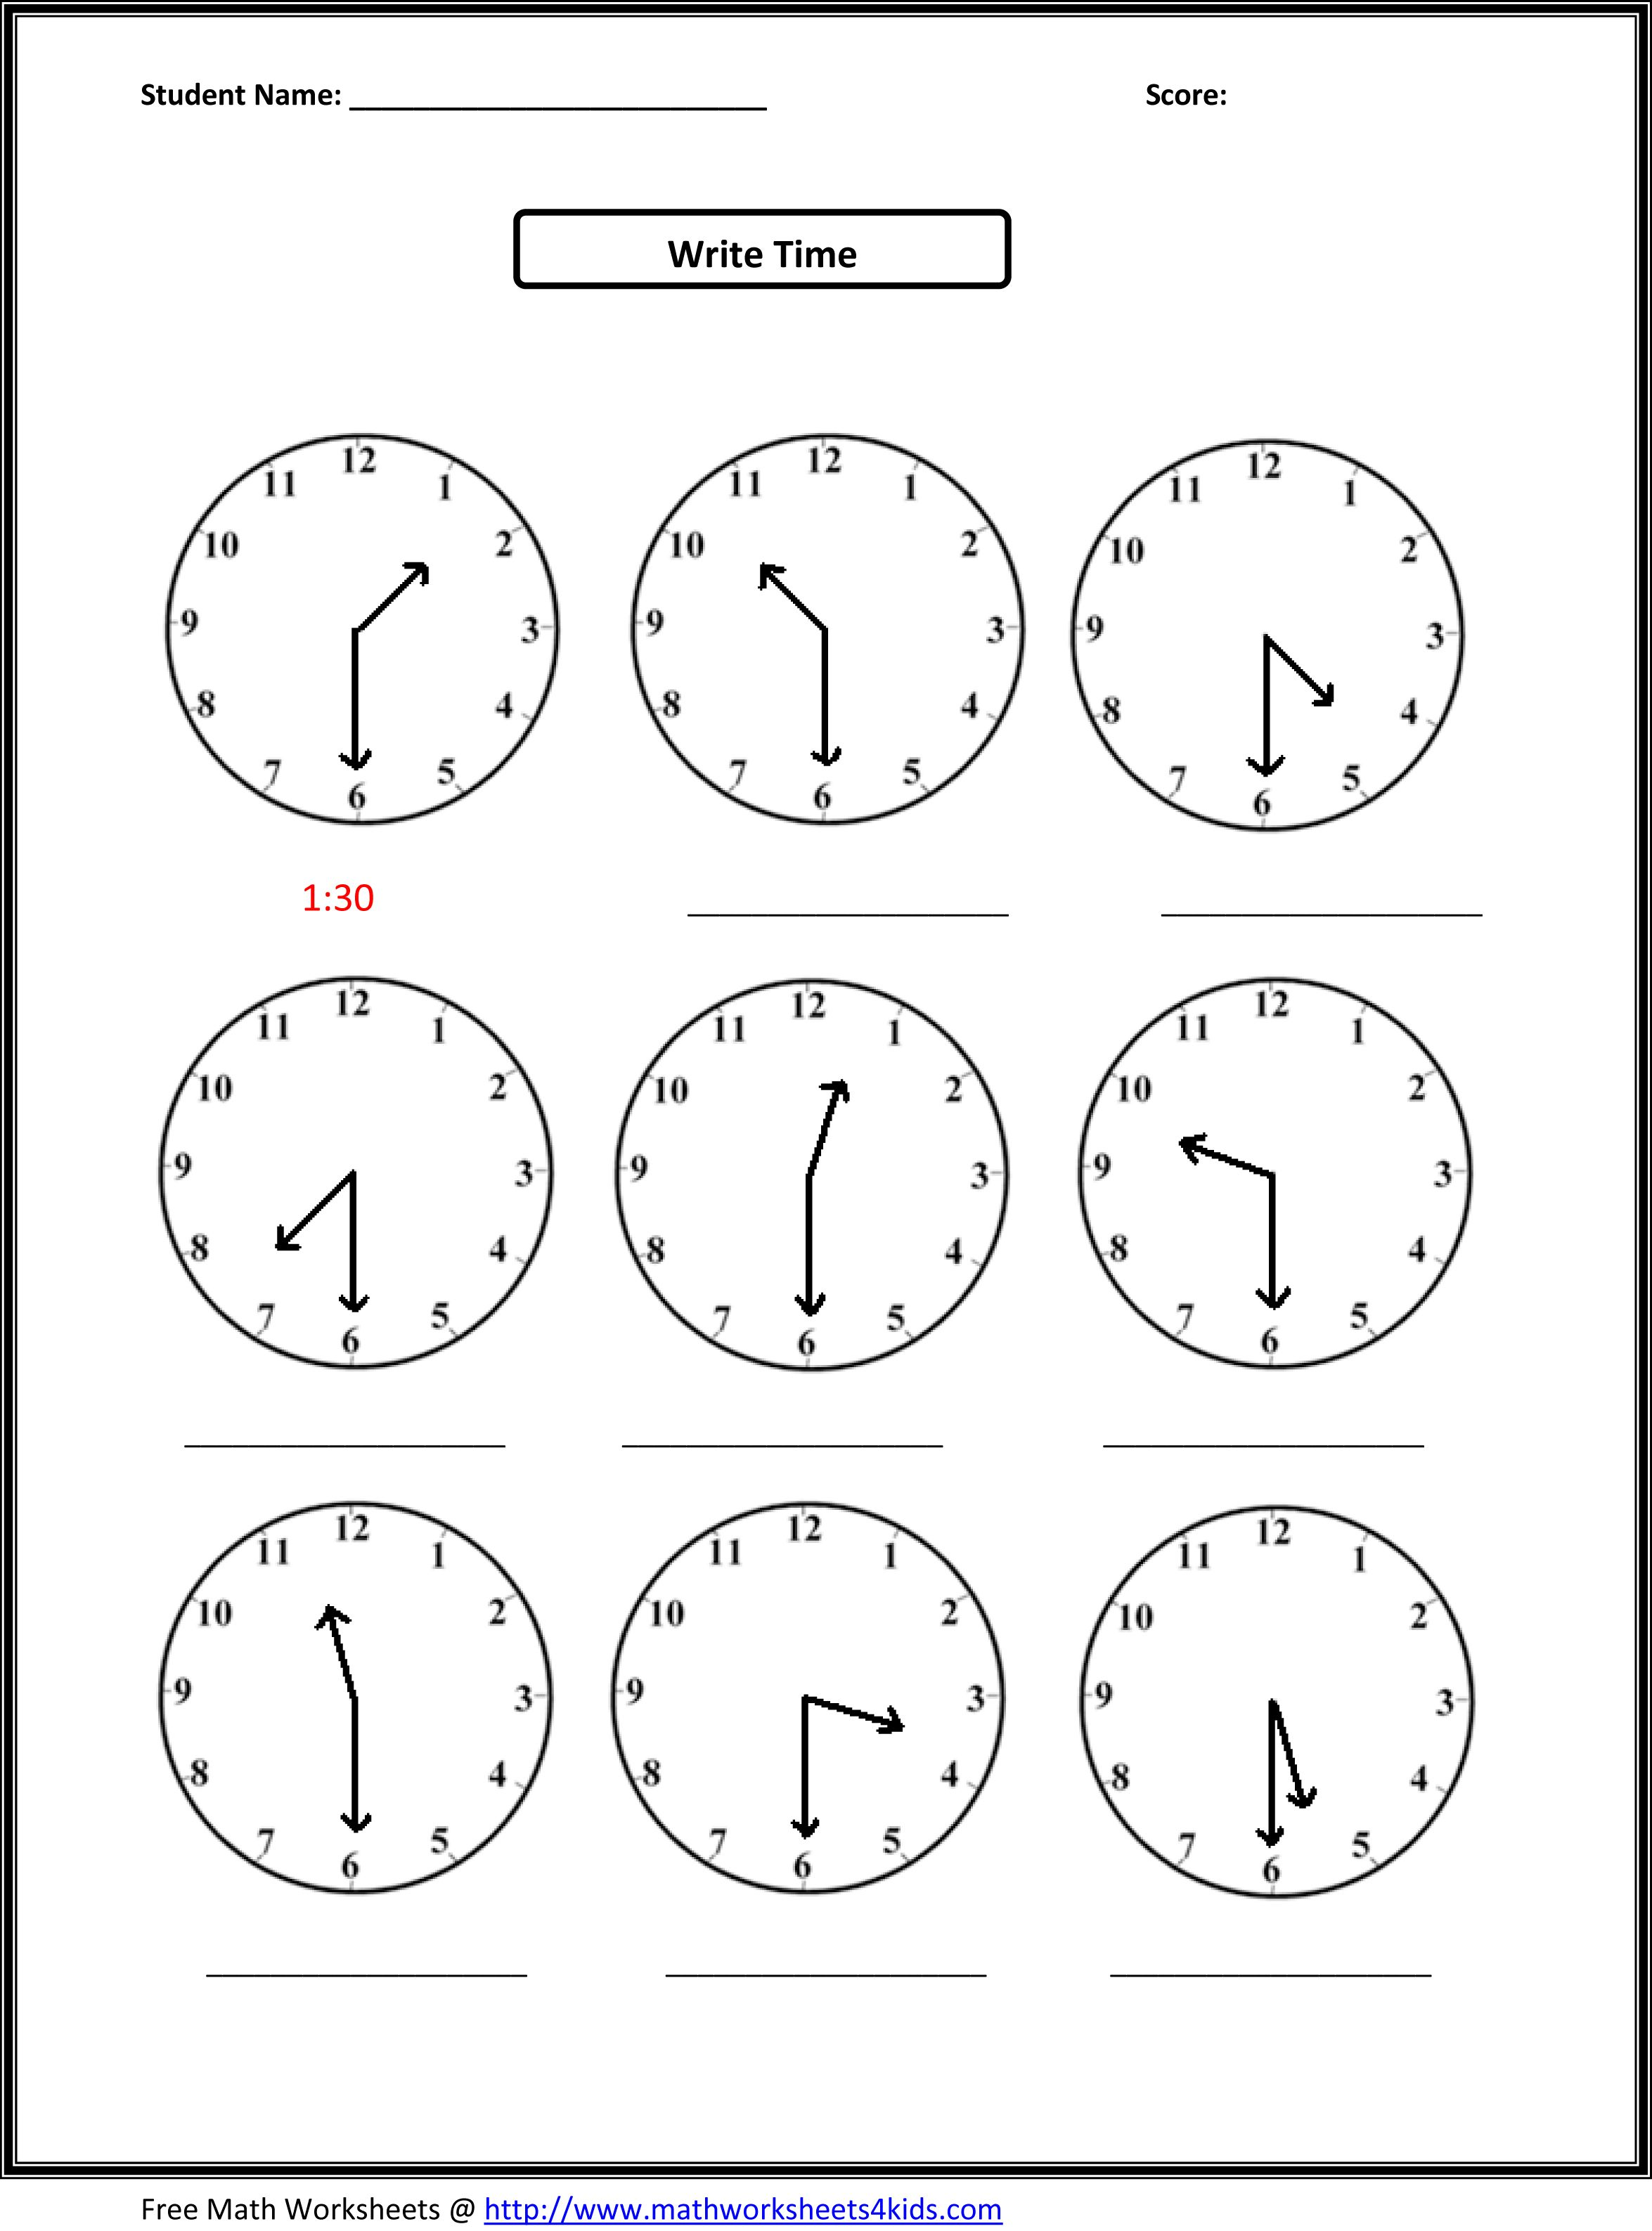 Weirdmailus  Unusual Worksheet On Time For Grade   Reocurent With Glamorous Free Printable Telling Time Worksheets Nd Grade  Reocurent With Enchanting Line Graph Worksheets Also Th Grade Reading Comprehension Worksheets In Addition Making Predictions Worksheet And Electron Energy And Light Worksheet Answers As Well As Back To School Worksheets Additionally Enzyme Worksheet From Reocurentcom With Weirdmailus  Glamorous Worksheet On Time For Grade   Reocurent With Enchanting Free Printable Telling Time Worksheets Nd Grade  Reocurent And Unusual Line Graph Worksheets Also Th Grade Reading Comprehension Worksheets In Addition Making Predictions Worksheet From Reocurentcom